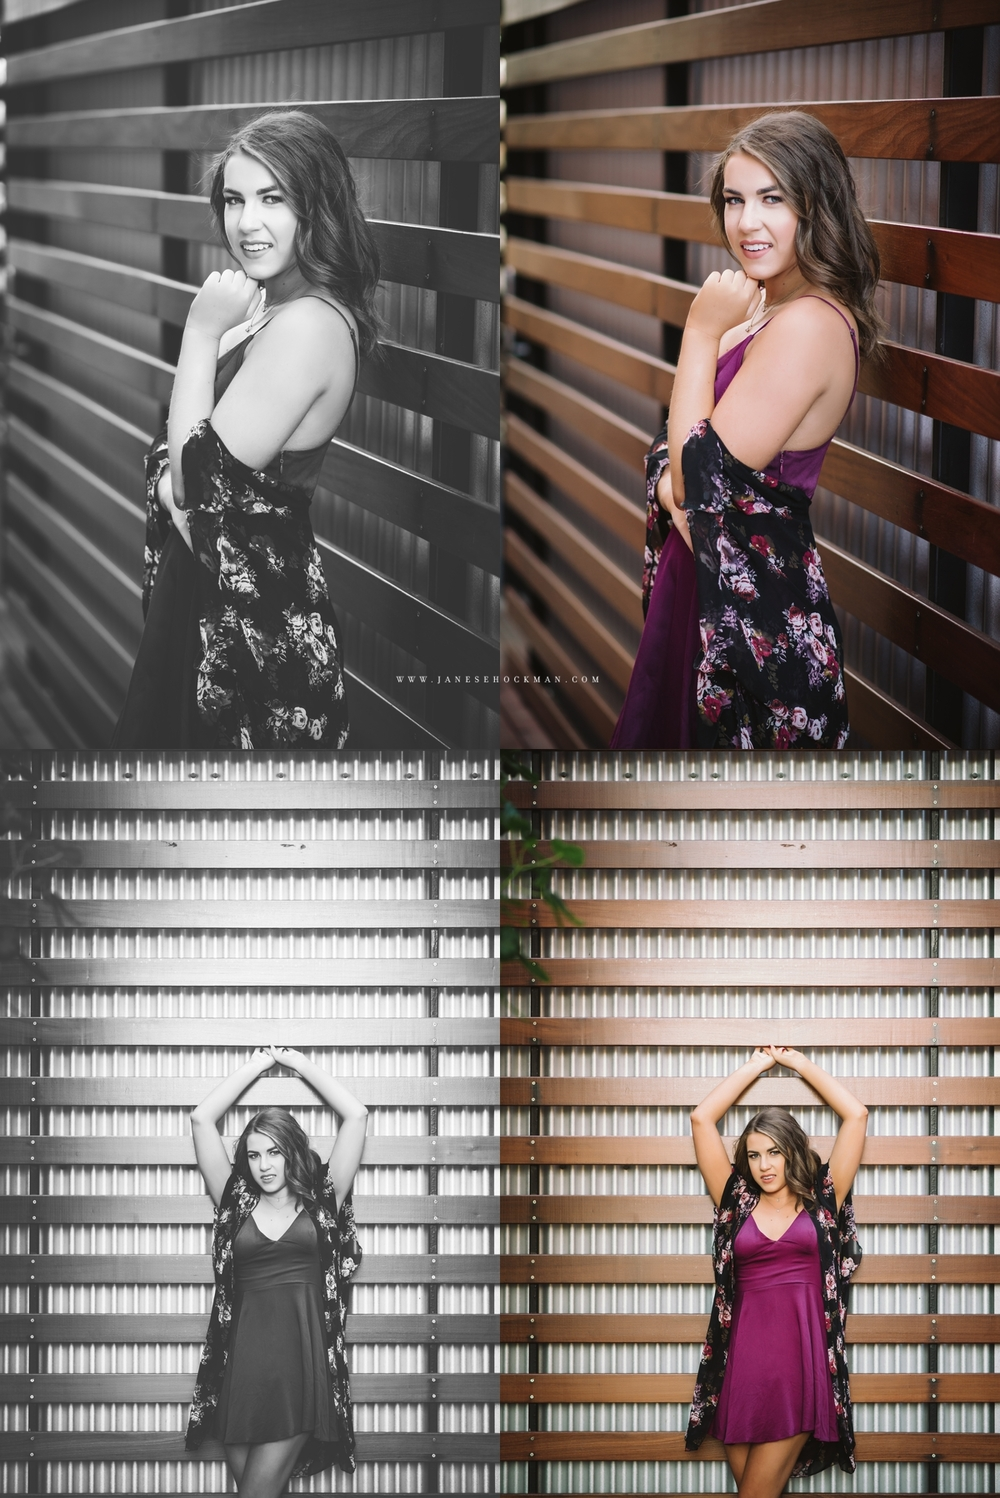 Holly | Janese Hockman Photography San Luis Obispo High School senior portraits California 1.jpg